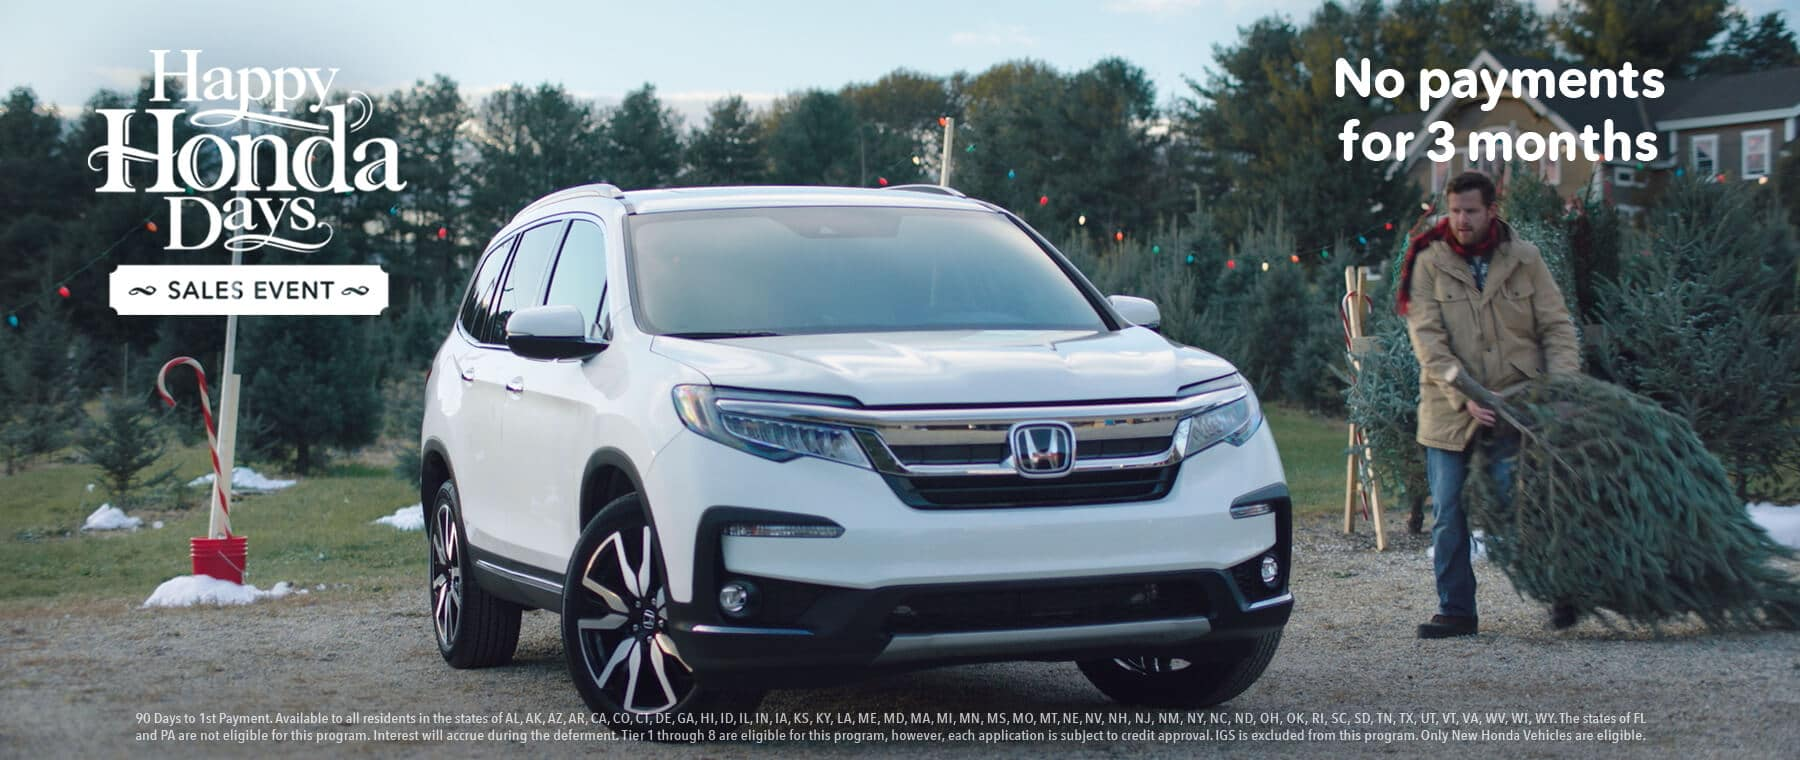 New England Honda Dealers Happy Honda Days CR-V Banner